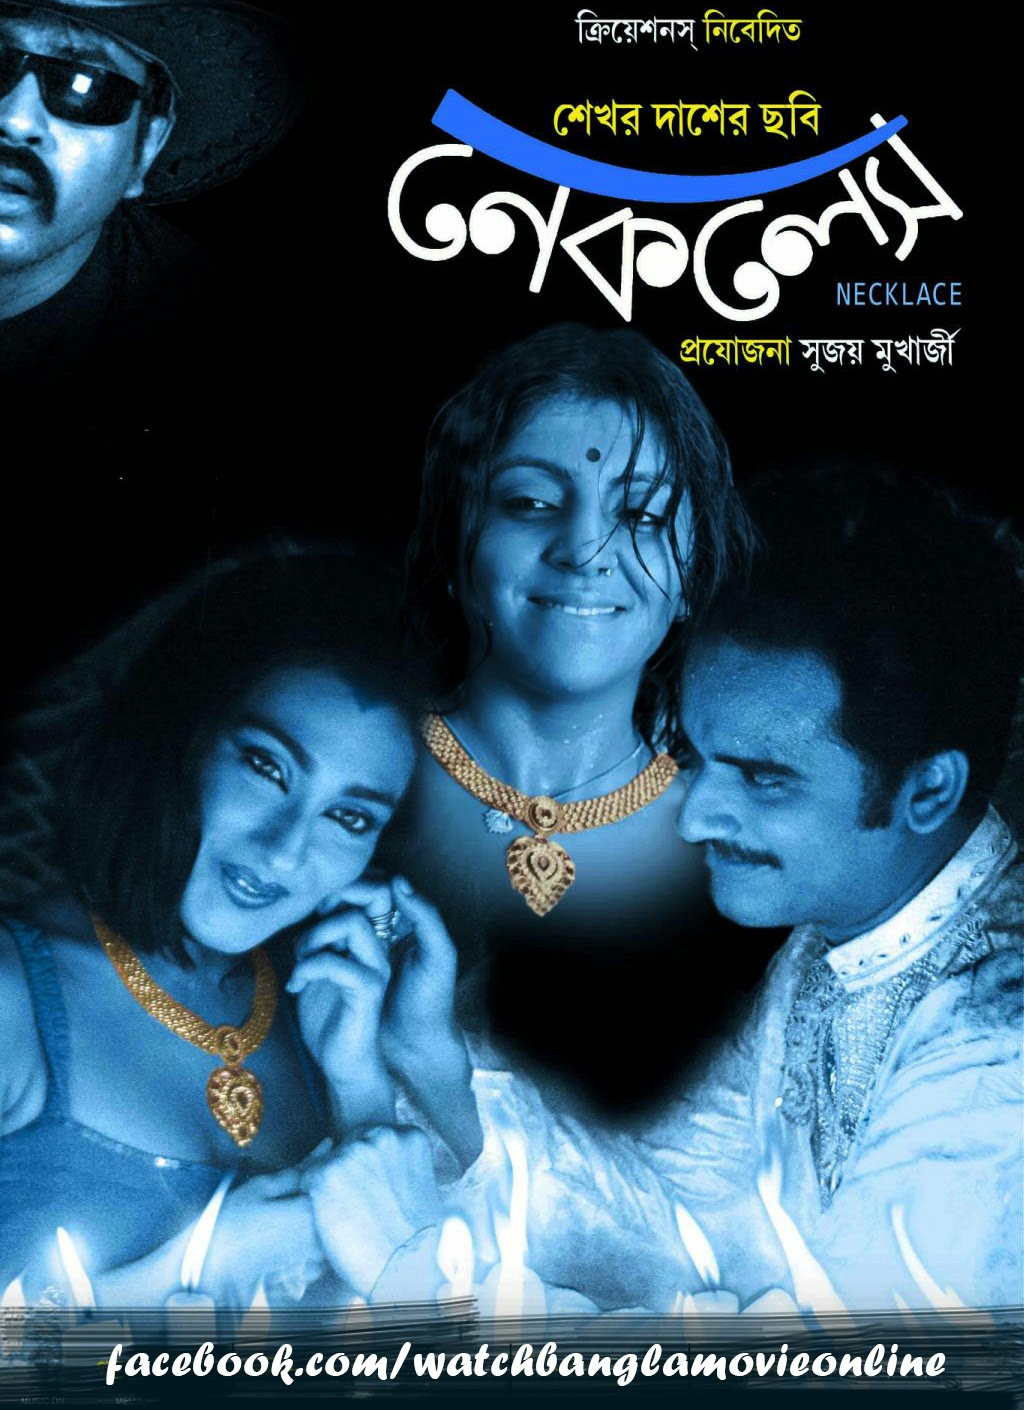 new bangla moviee 2014click hear............................ Necklace+bengali+movie